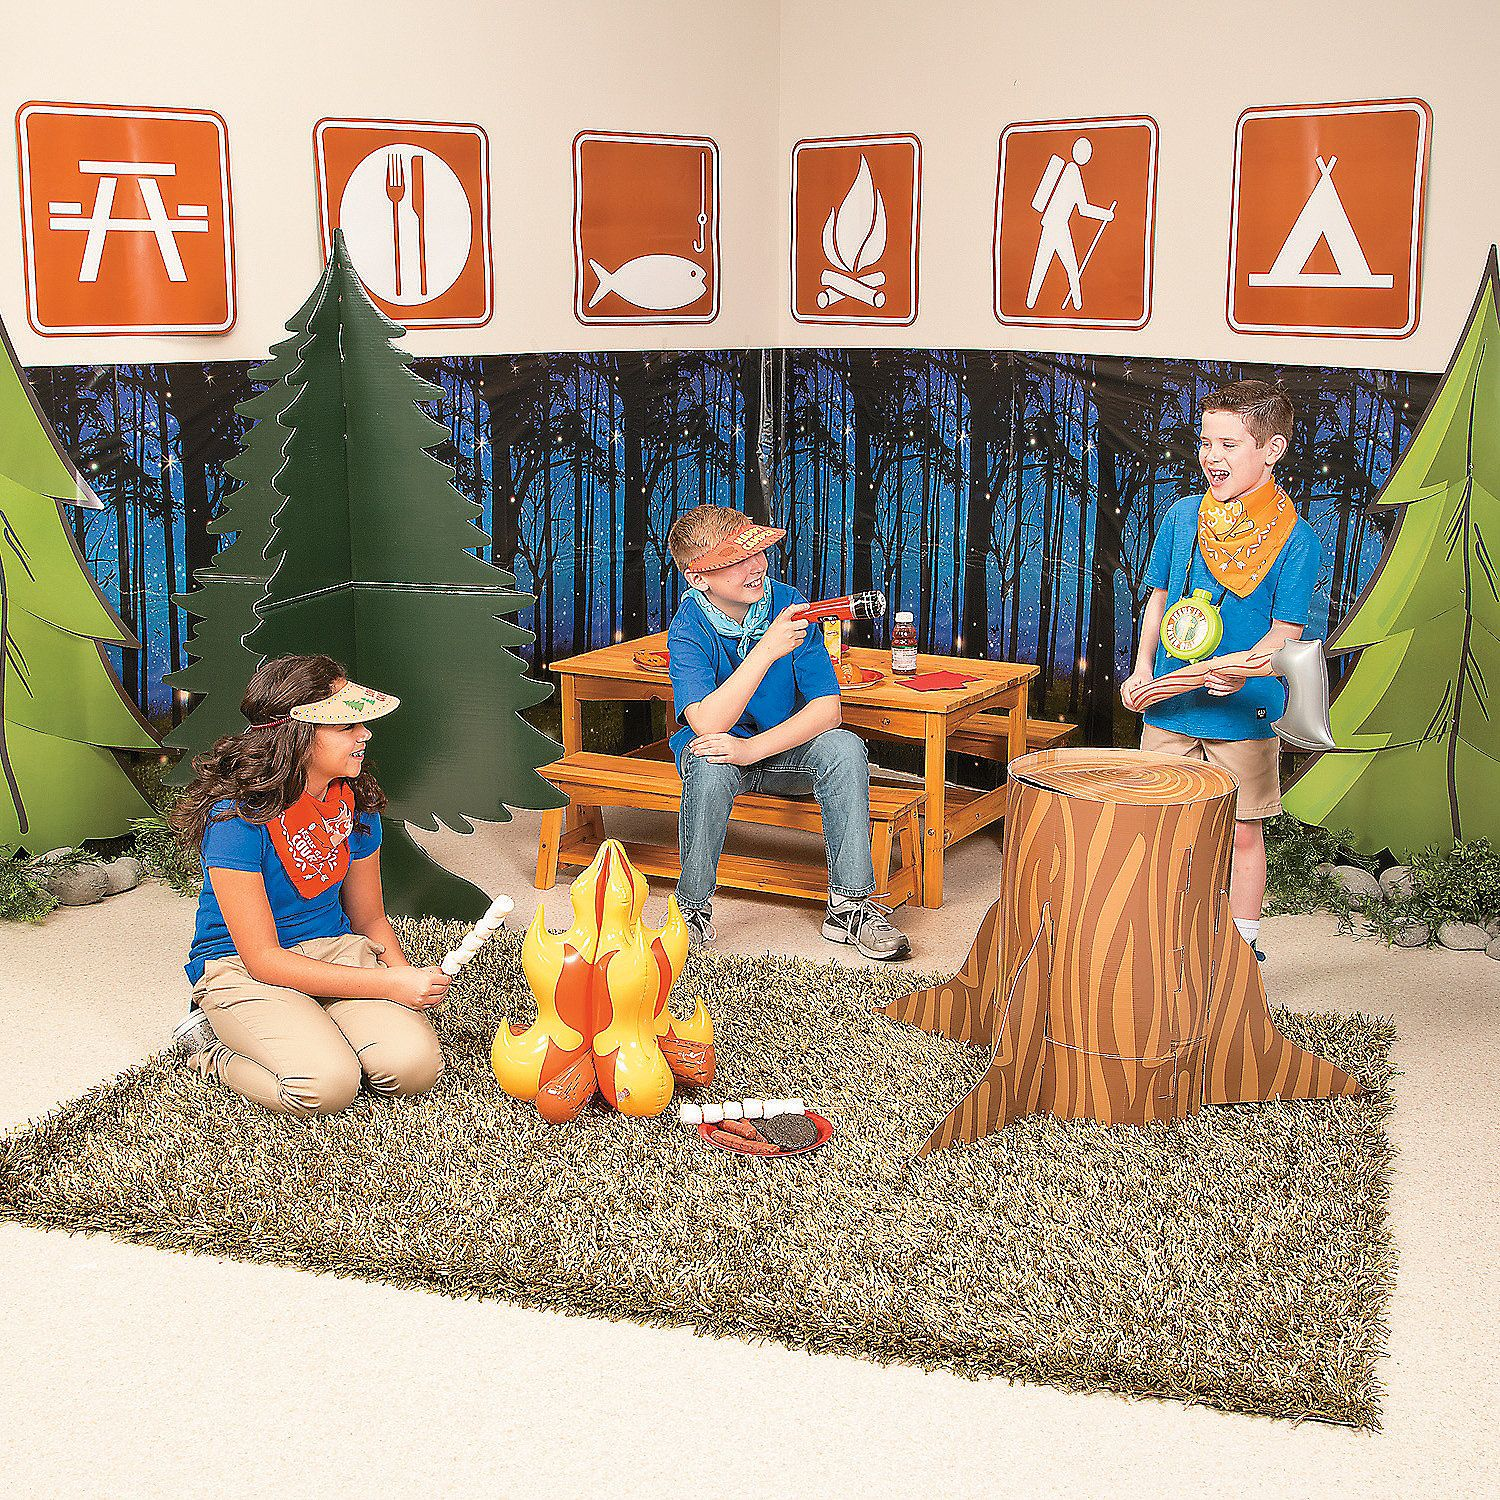 Vbs Camping Theme Decorating Ideas Part - 30: 2015 VBS Camp Courage Scene Setter Idea | Set Up Camp In Your VBS Classroom  With